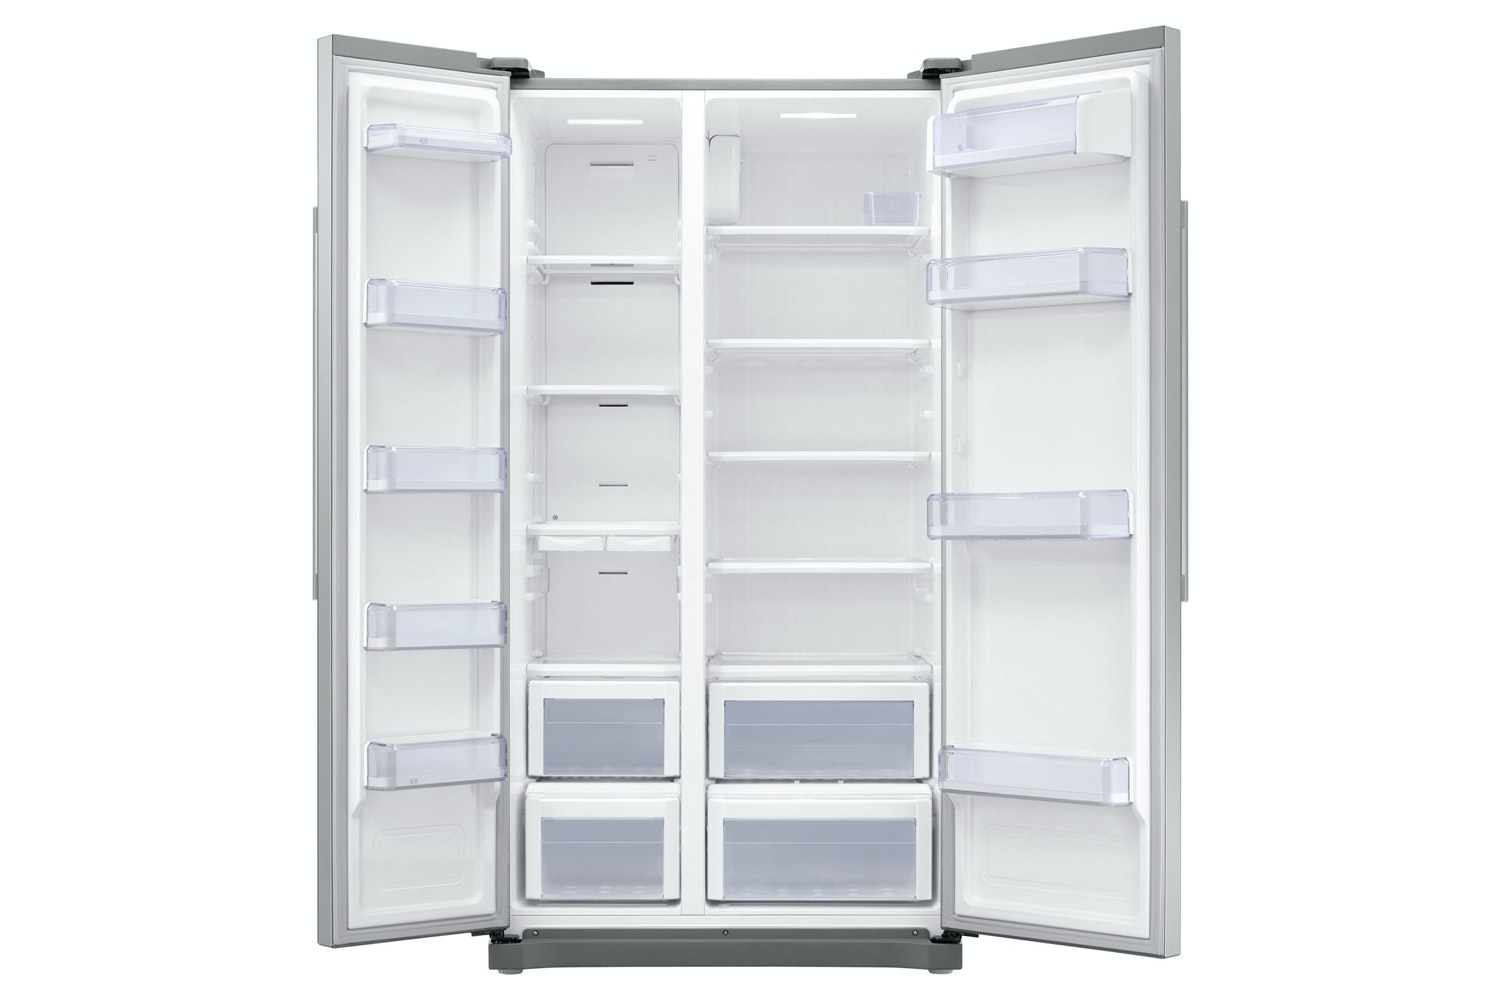 Samsung American Fridge Freezer | RS54N3103SA/EU